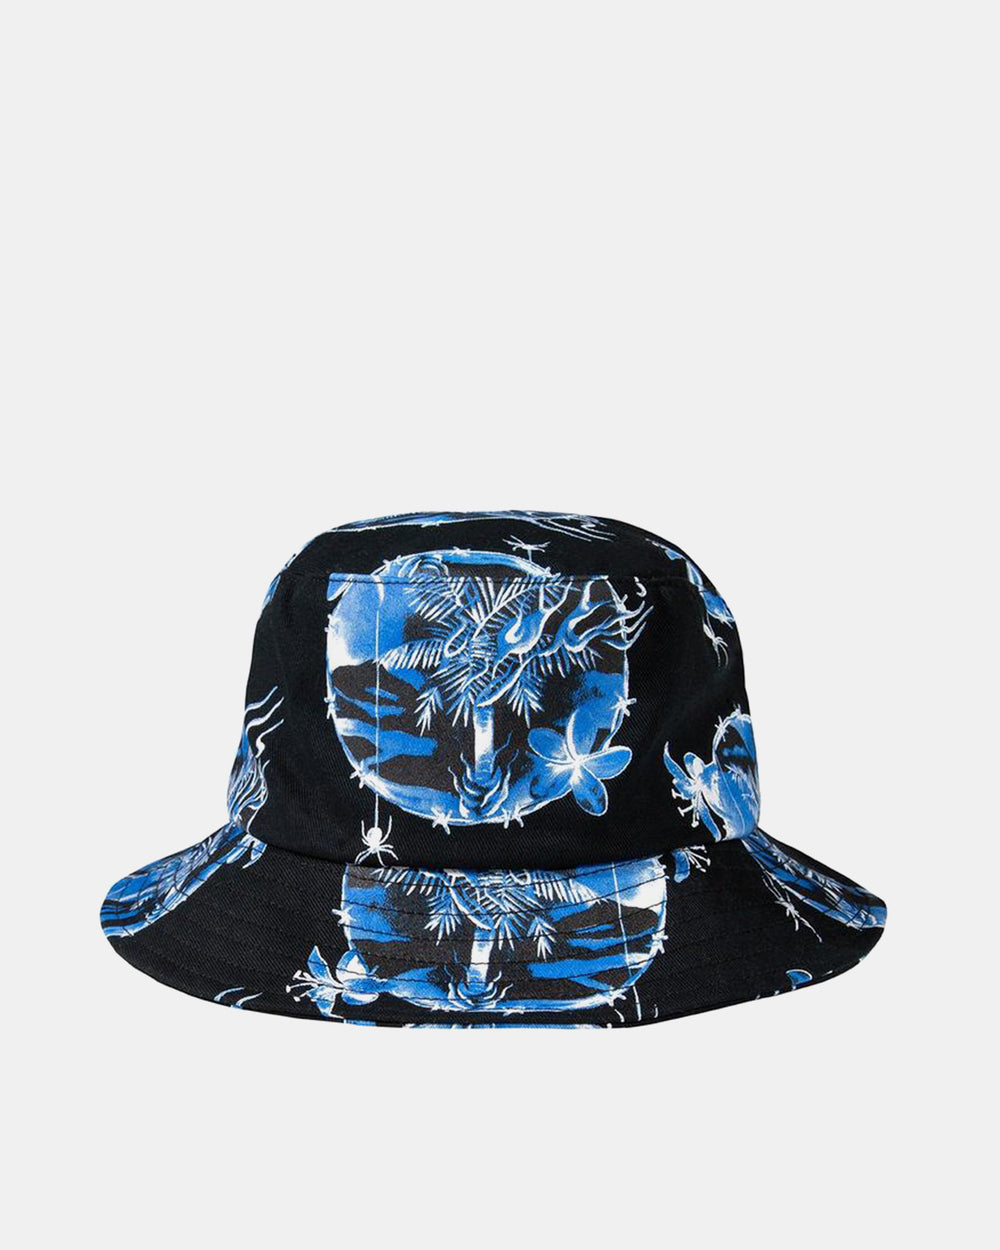 Babylon LA - Othelo Bucket Hat (Black)